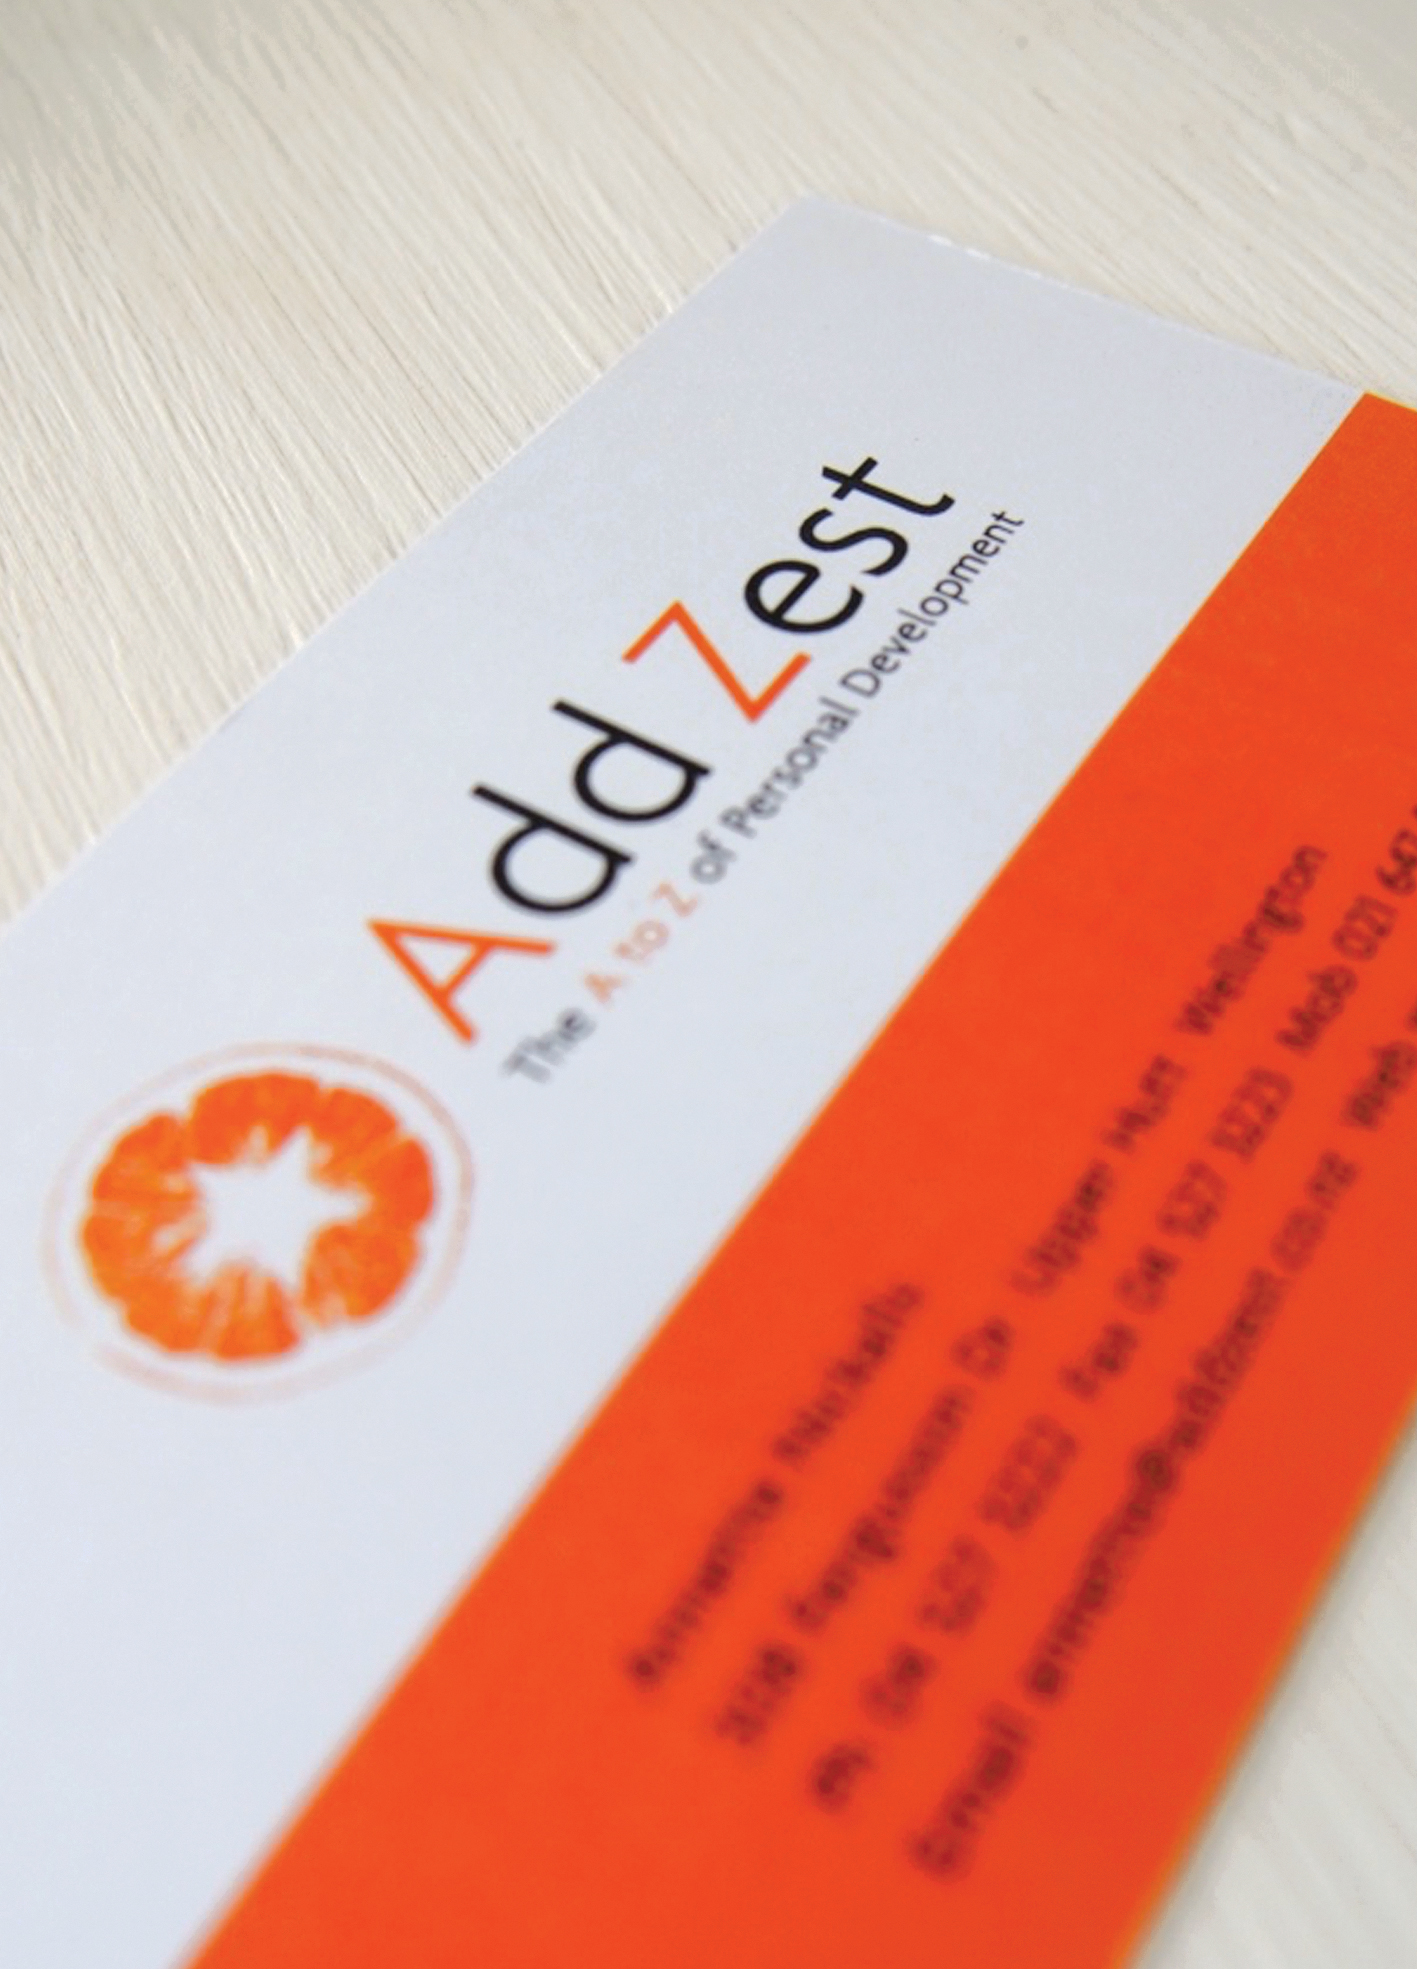 [Add Zest] 2006 Create and design a brand identity for a new life coaching company. Expand to business card and letterhead. [Above business card]